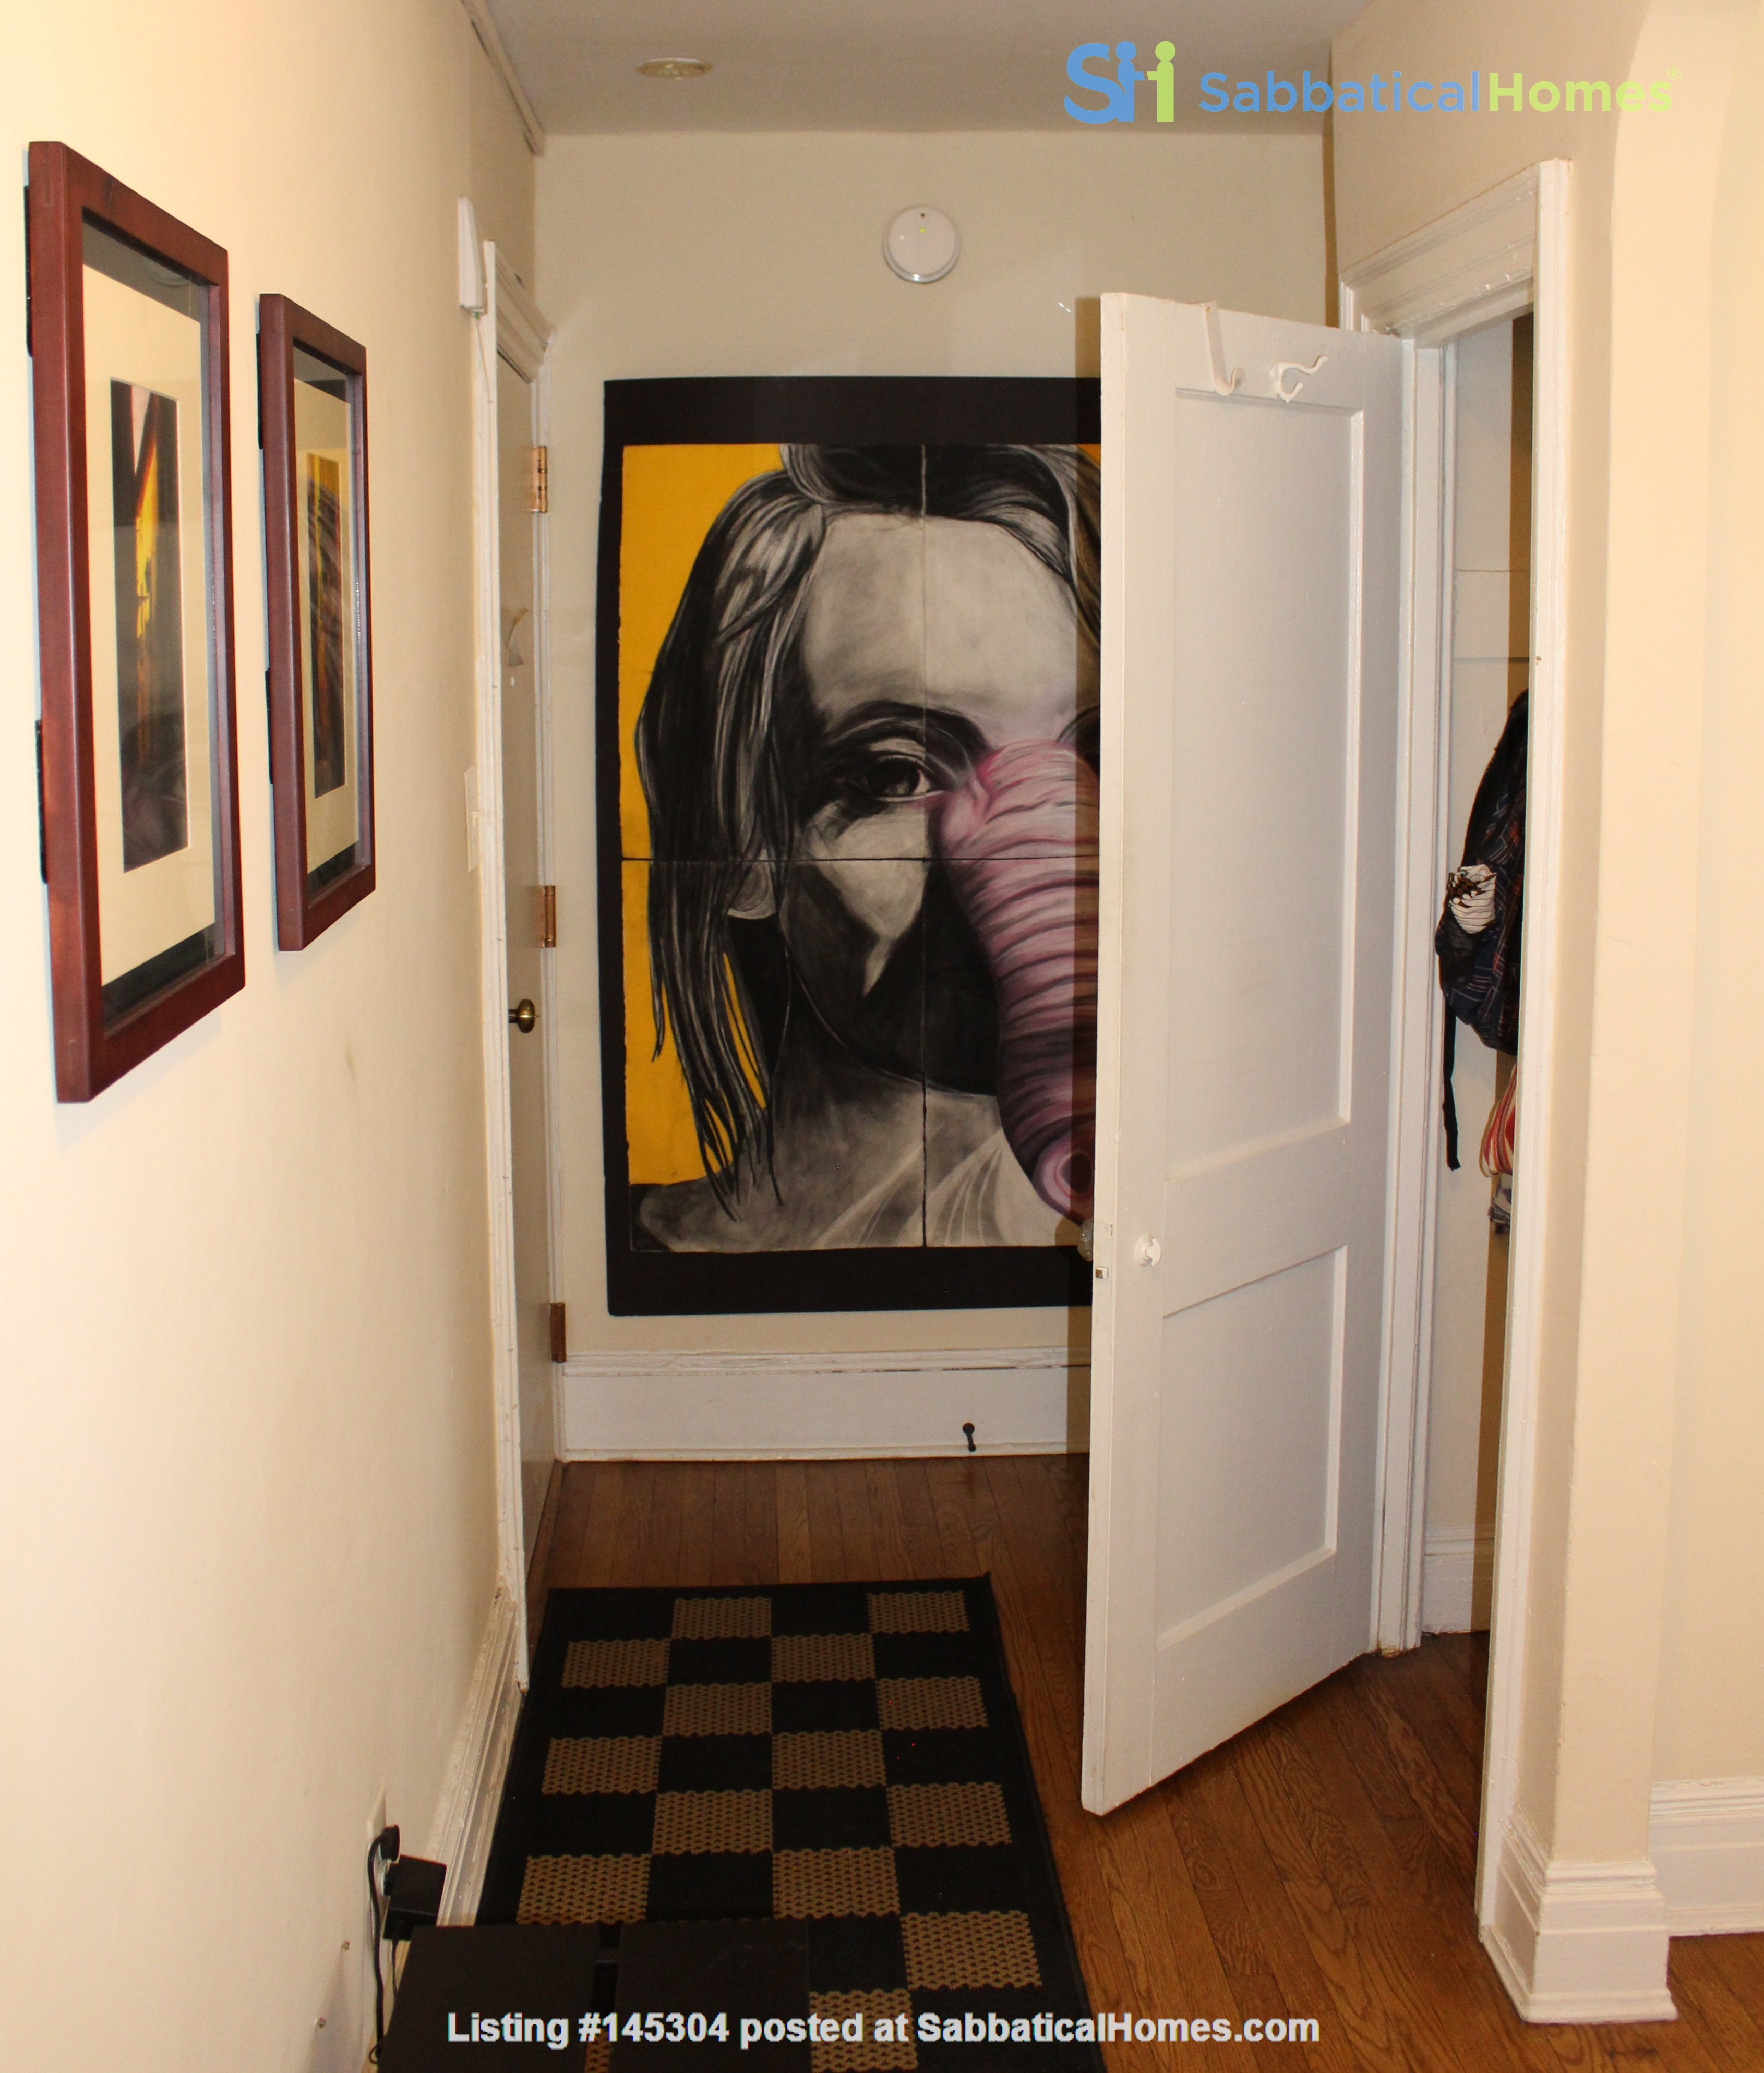 1 BR Condo for long-term lease comes w pool, gym and charm! Home Rental in Philadelphia, Pennsylvania, United States 0